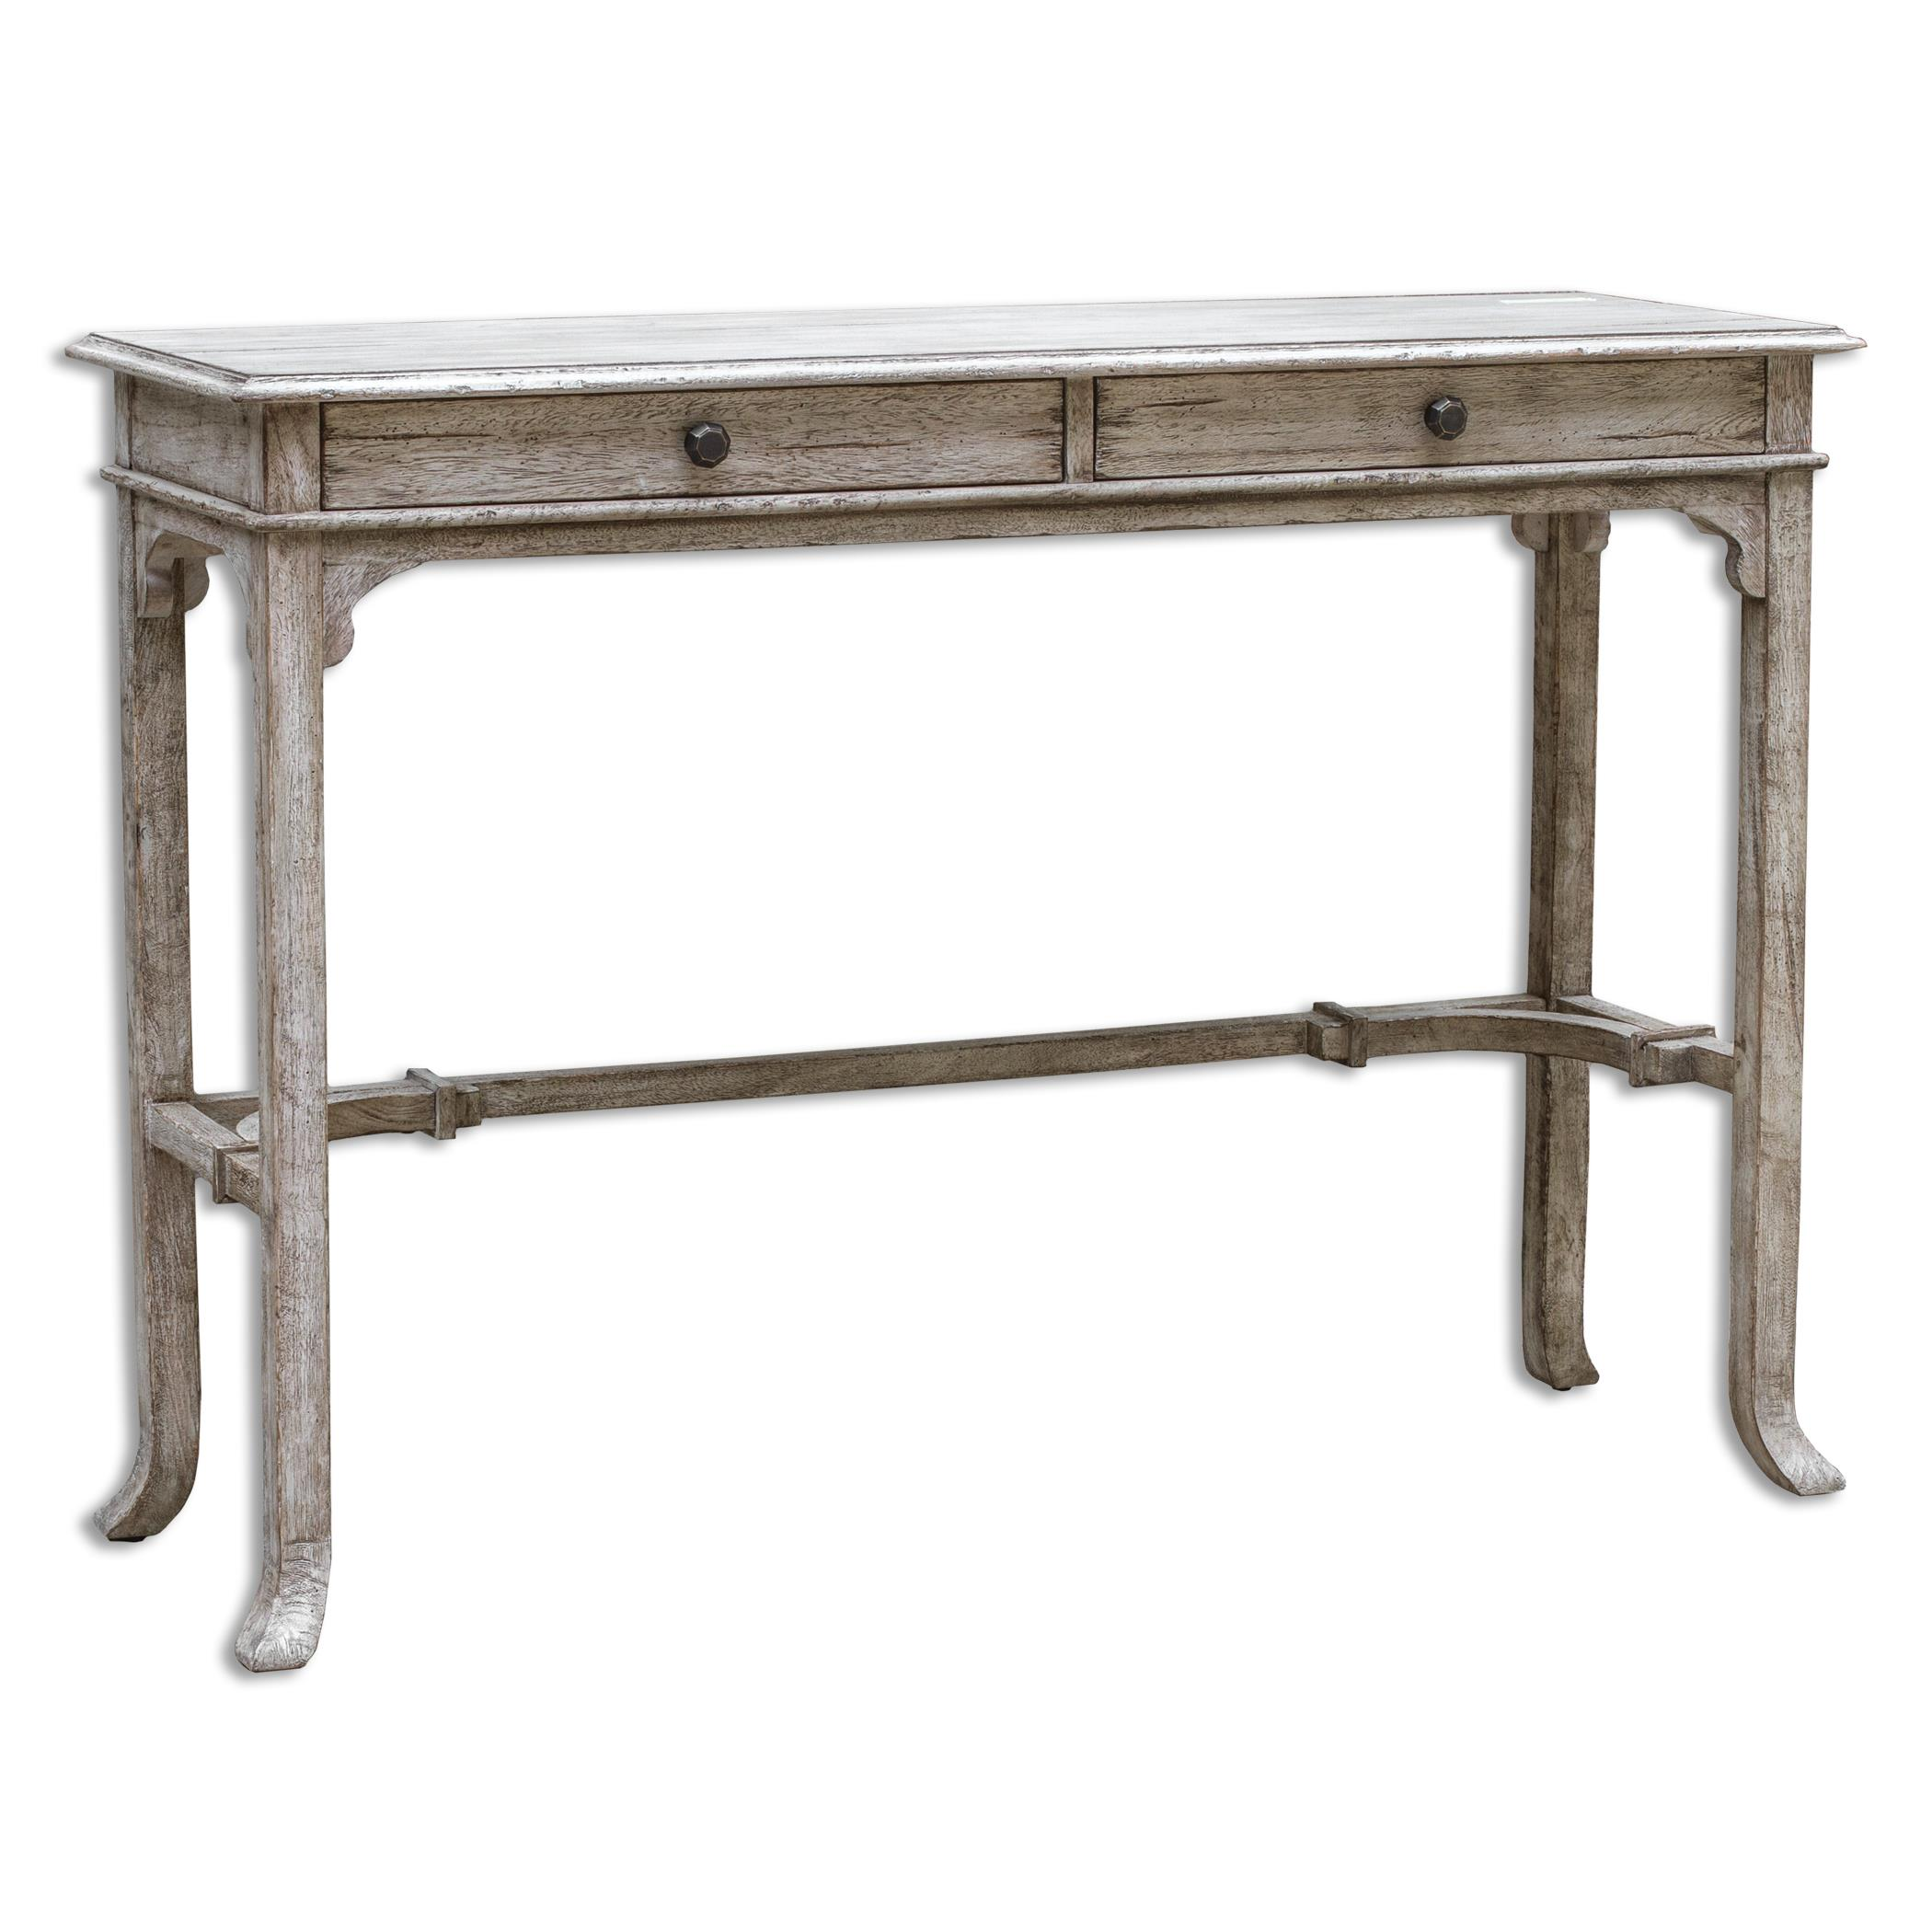 Uttermost Accent Furniture Bridgely Wooden Console Table - Item Number: 25659